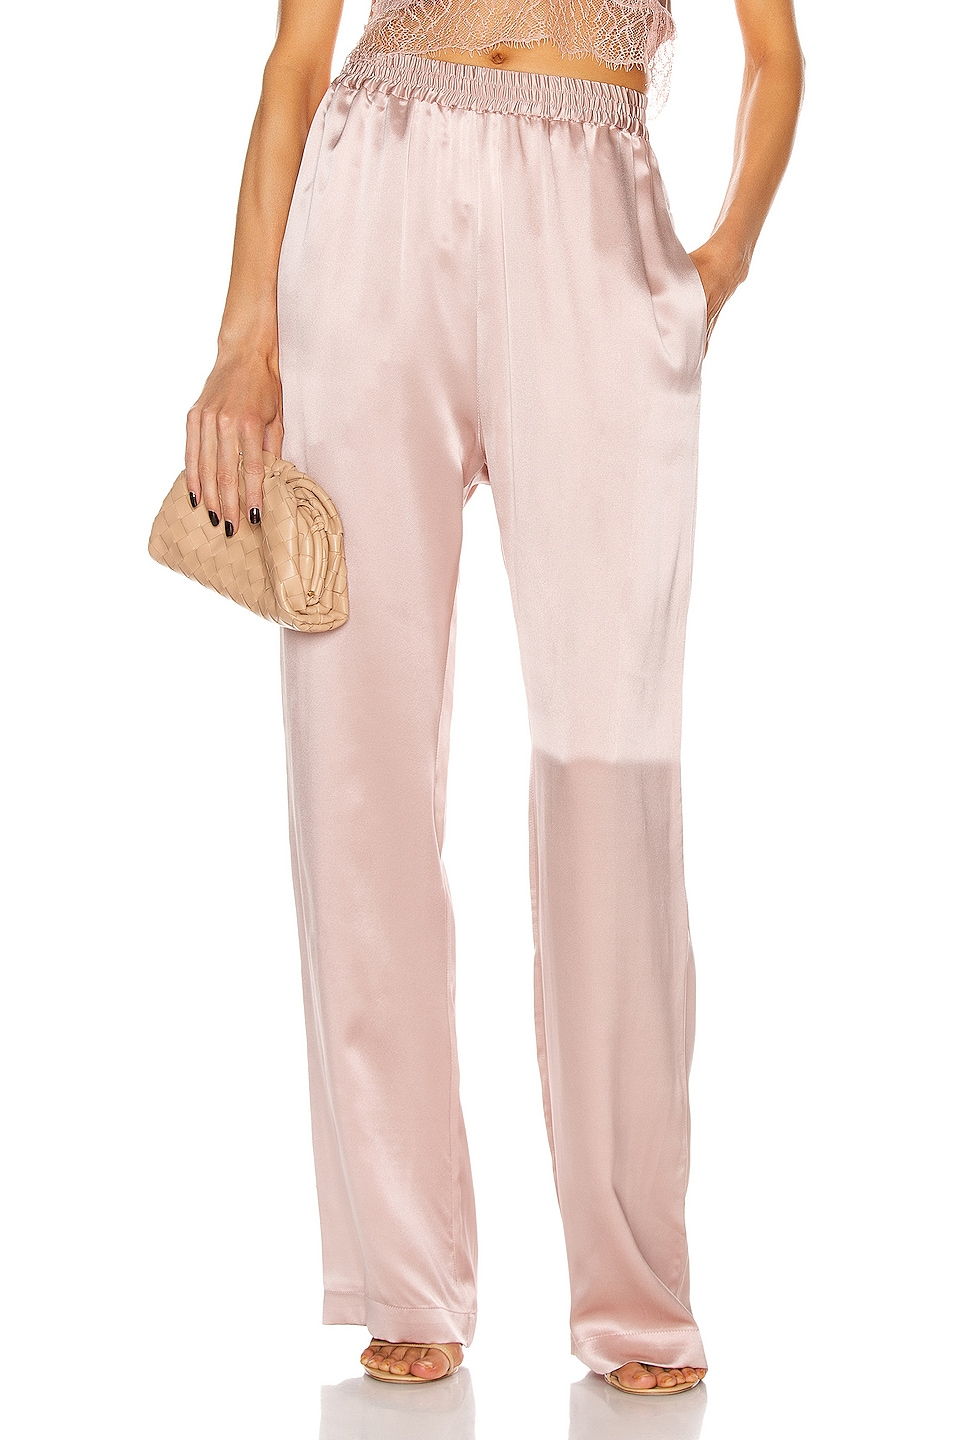 Image 1 of SABLYN Penelope Pant in Cherry Blossom